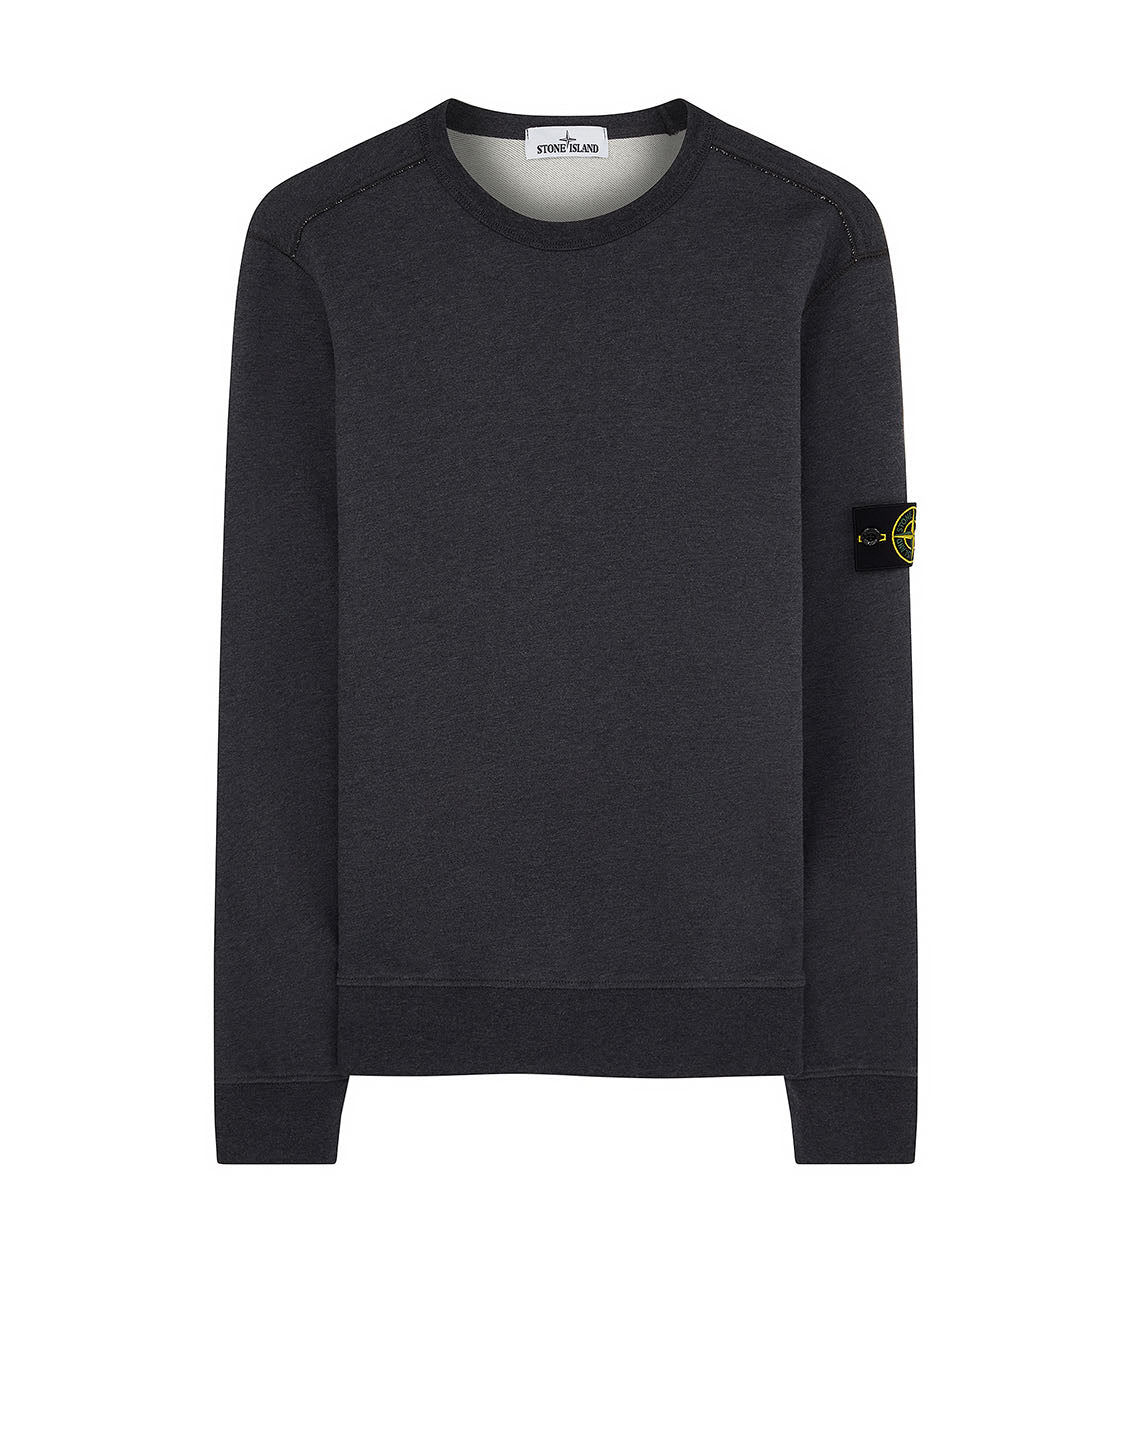 62751 Crewneck Sweatshirt in Dark Grey